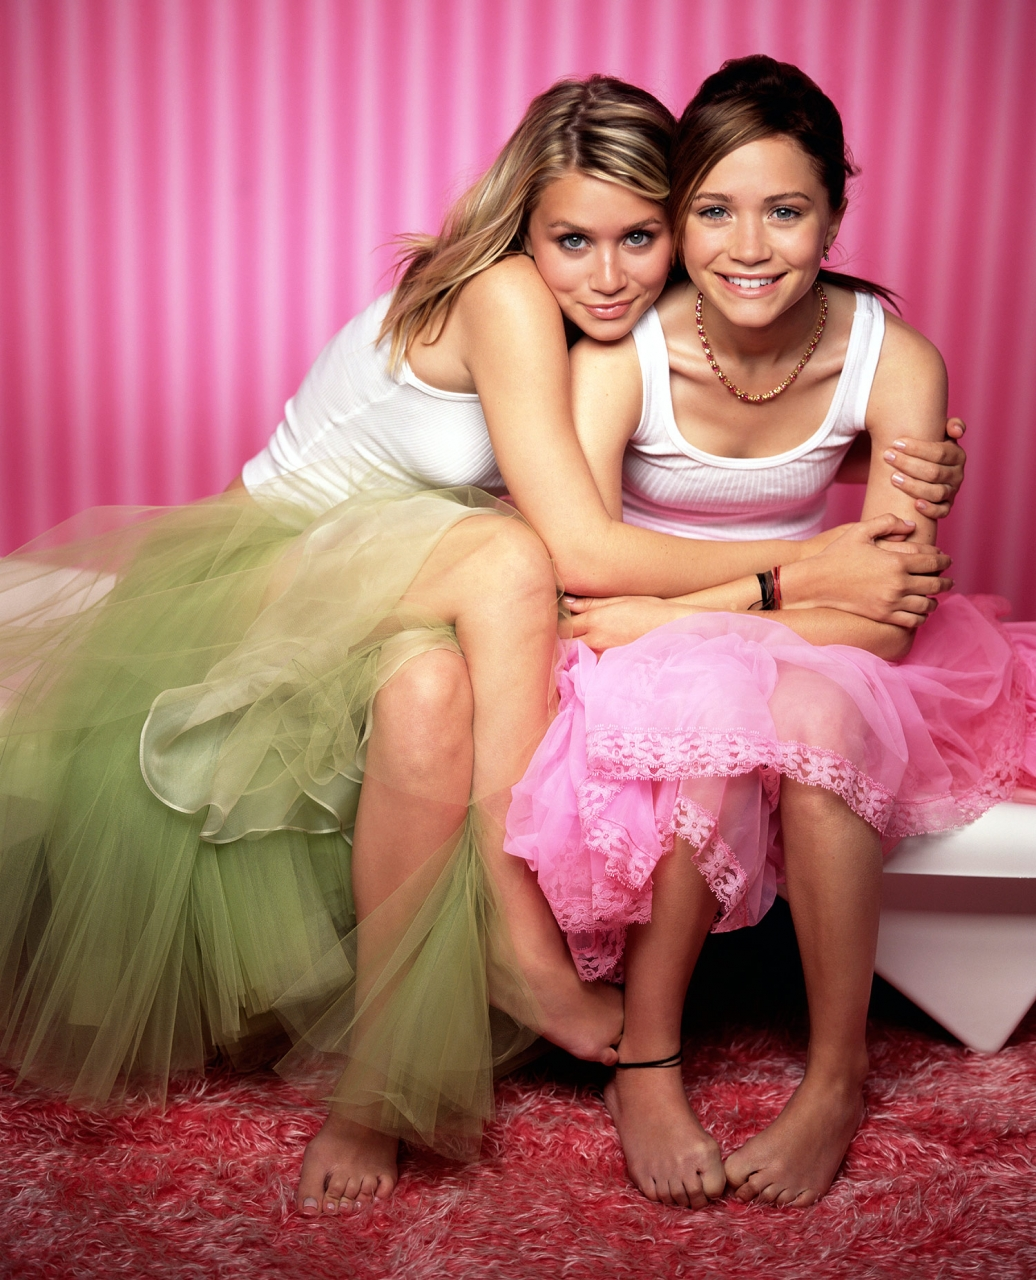 Does olsen twins nude together